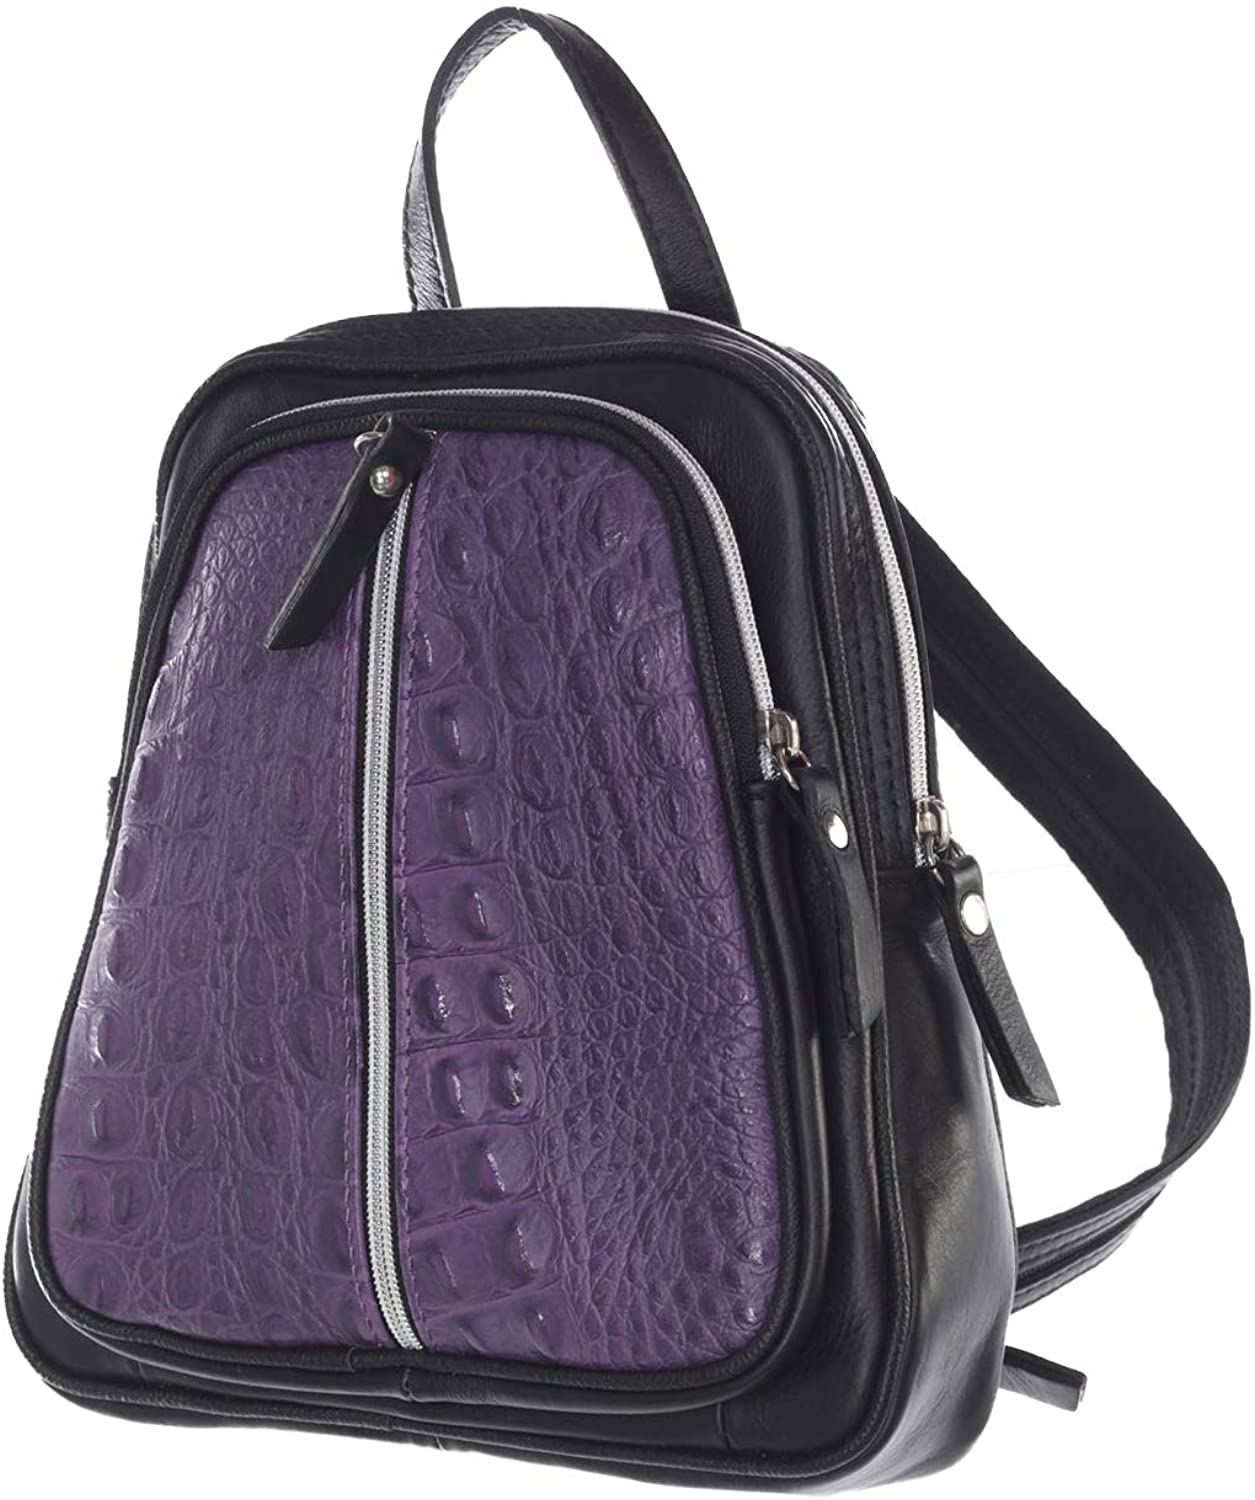 Avanti Moda Backpack Mitra 214